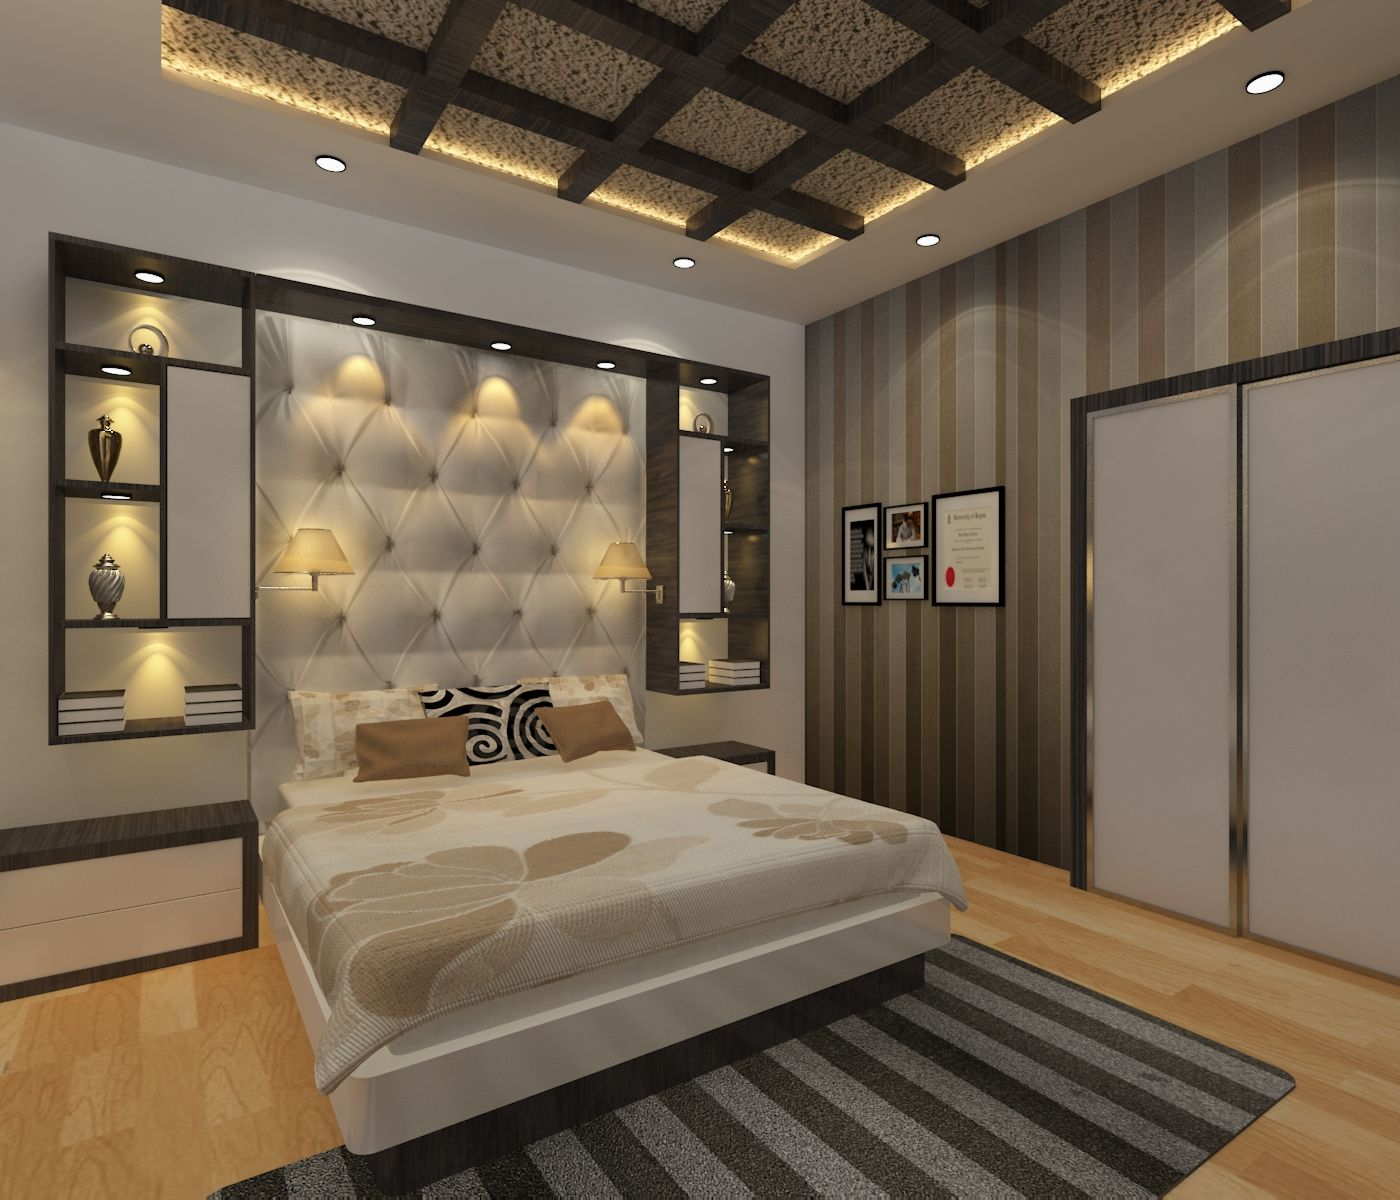 Bedroom Designs Latest 2018 Luxury Bedroom With Elements Bedroom Bed Cover Ceiling